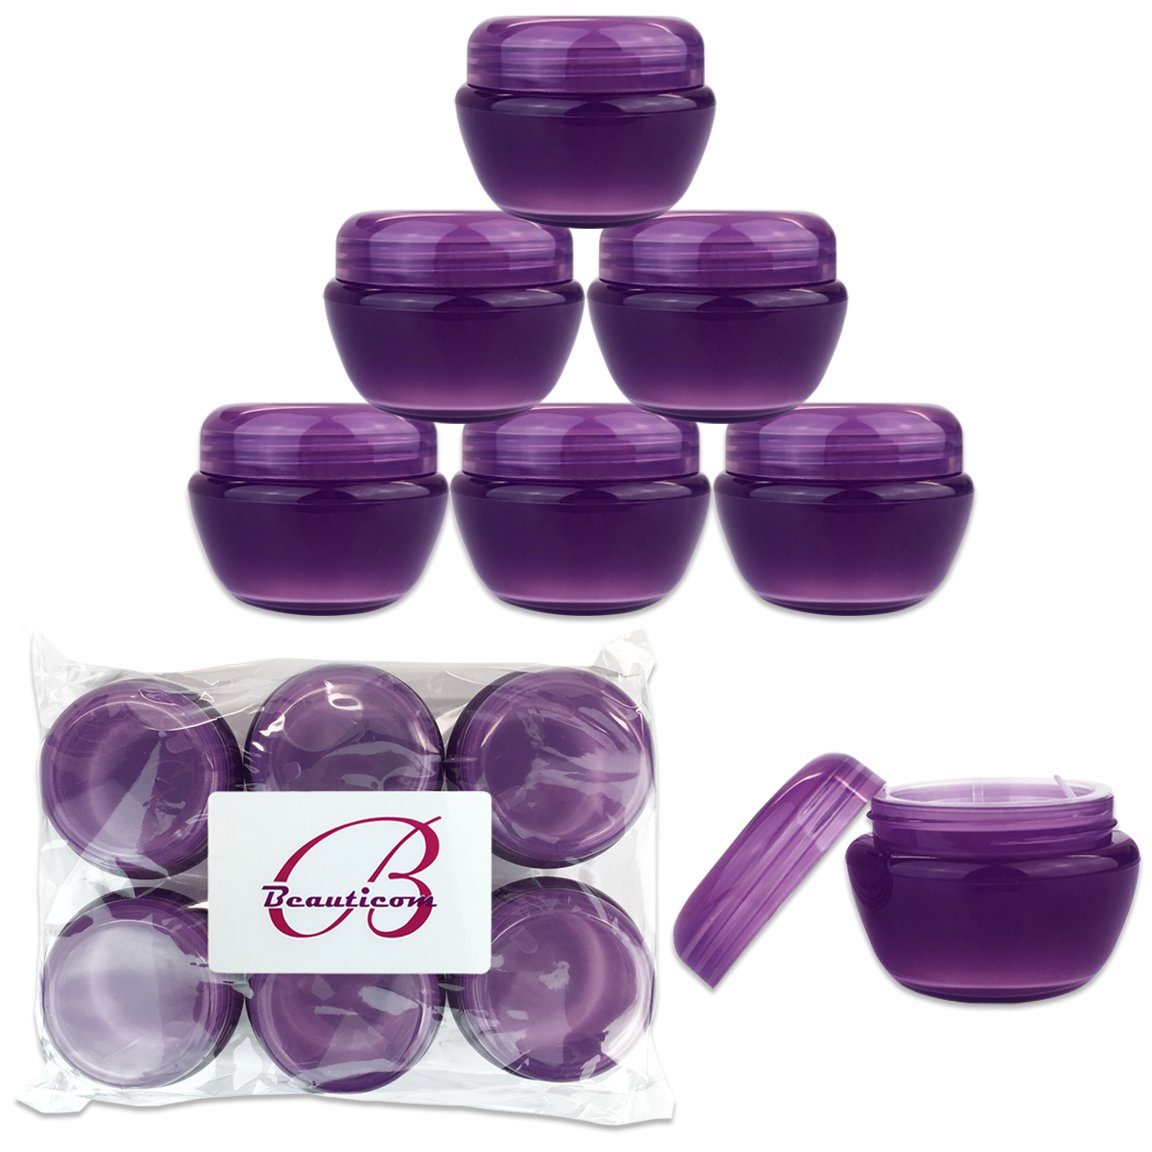 Beauticom 36 Pieces 30G 30ML 1 Oz PURPLE Frosted Container Jars with Inner Liners for Scrubs, Oils, Salves, Creams, Lotions, Medication, Cosmetics – BPA Free